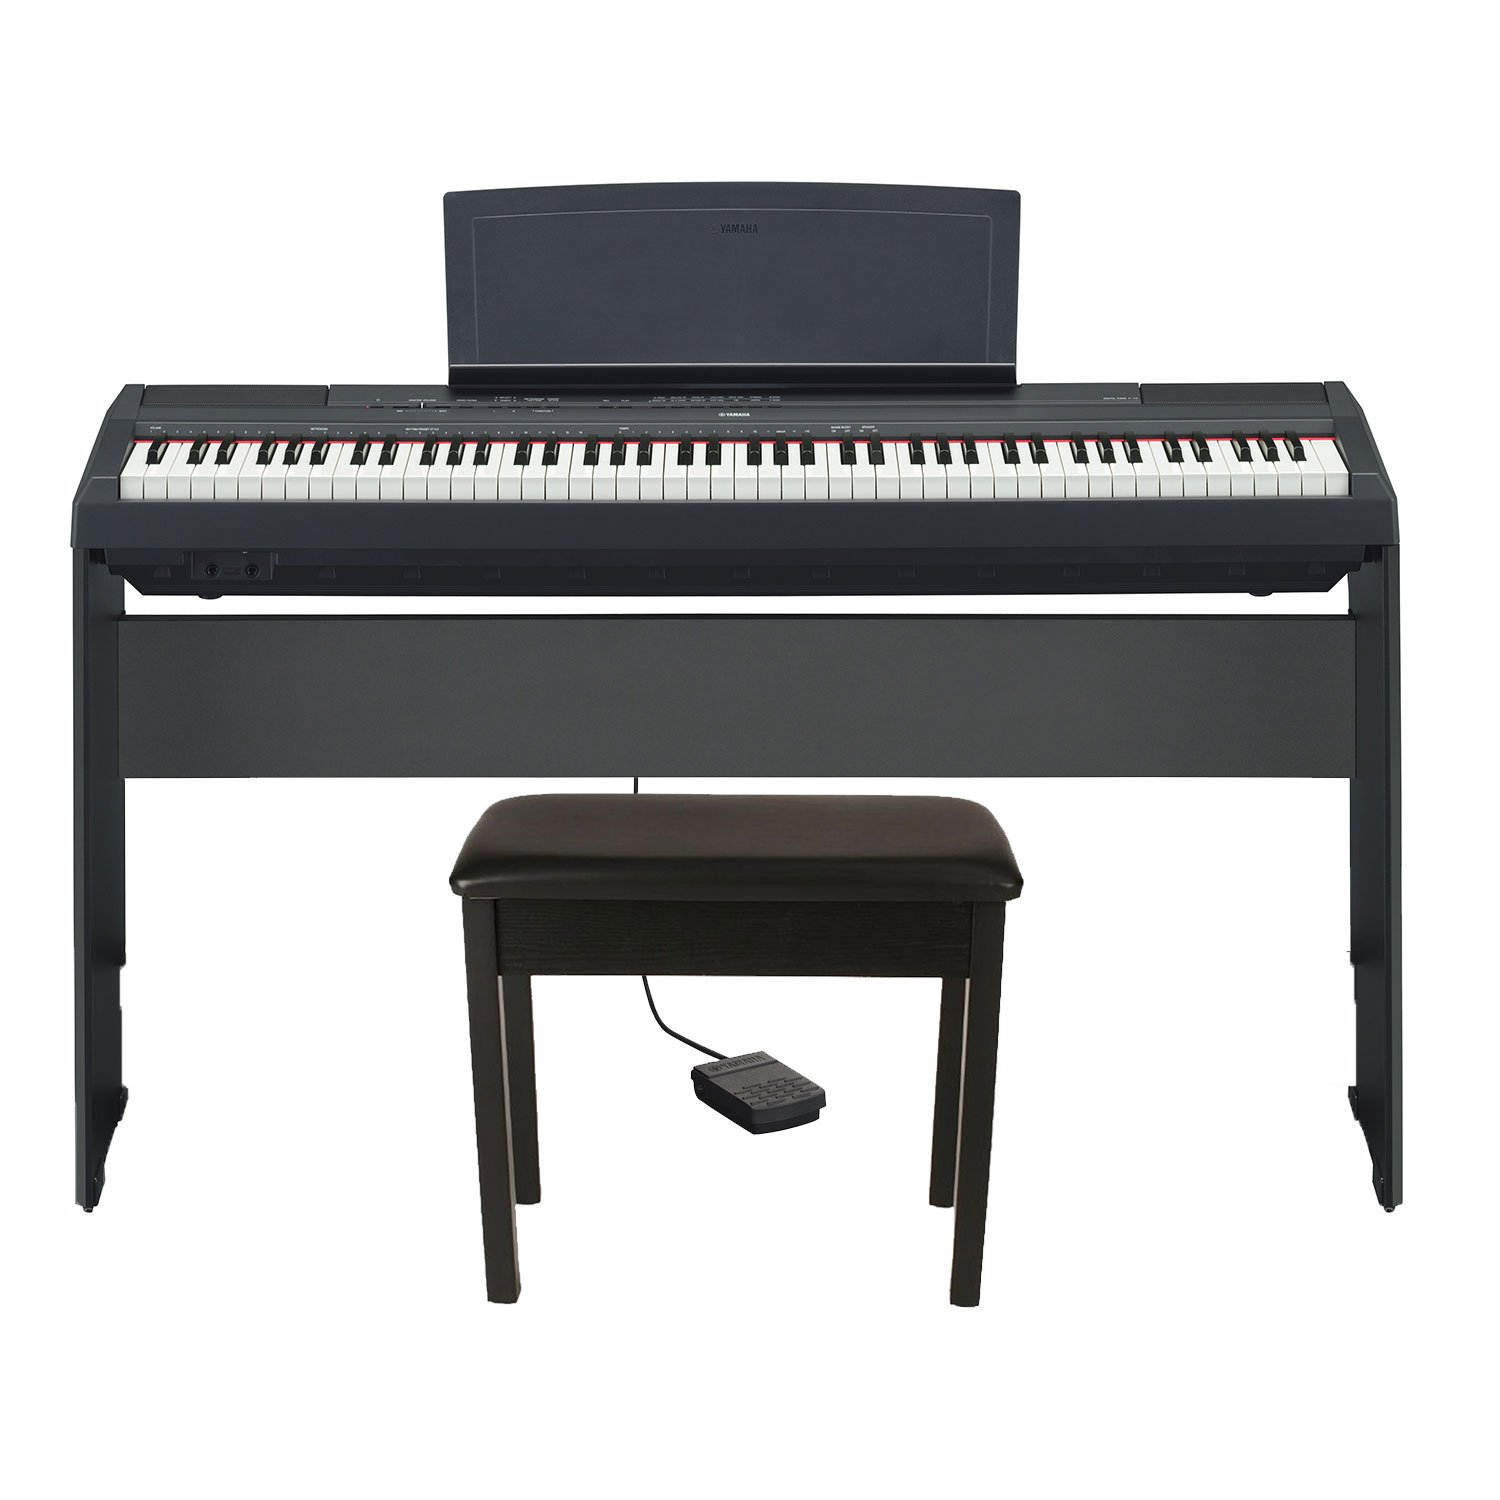 Yamaha P125B HHB17 Holiday Home Bundle (Includes) Yamaha P115B 88-Key Digital Keyboard Piano in Matt Finish Black with Yamaha L85 Wood Digital Piano Stand and Yamaha BB1 Padded Wooden Piano Bench by Yamaha